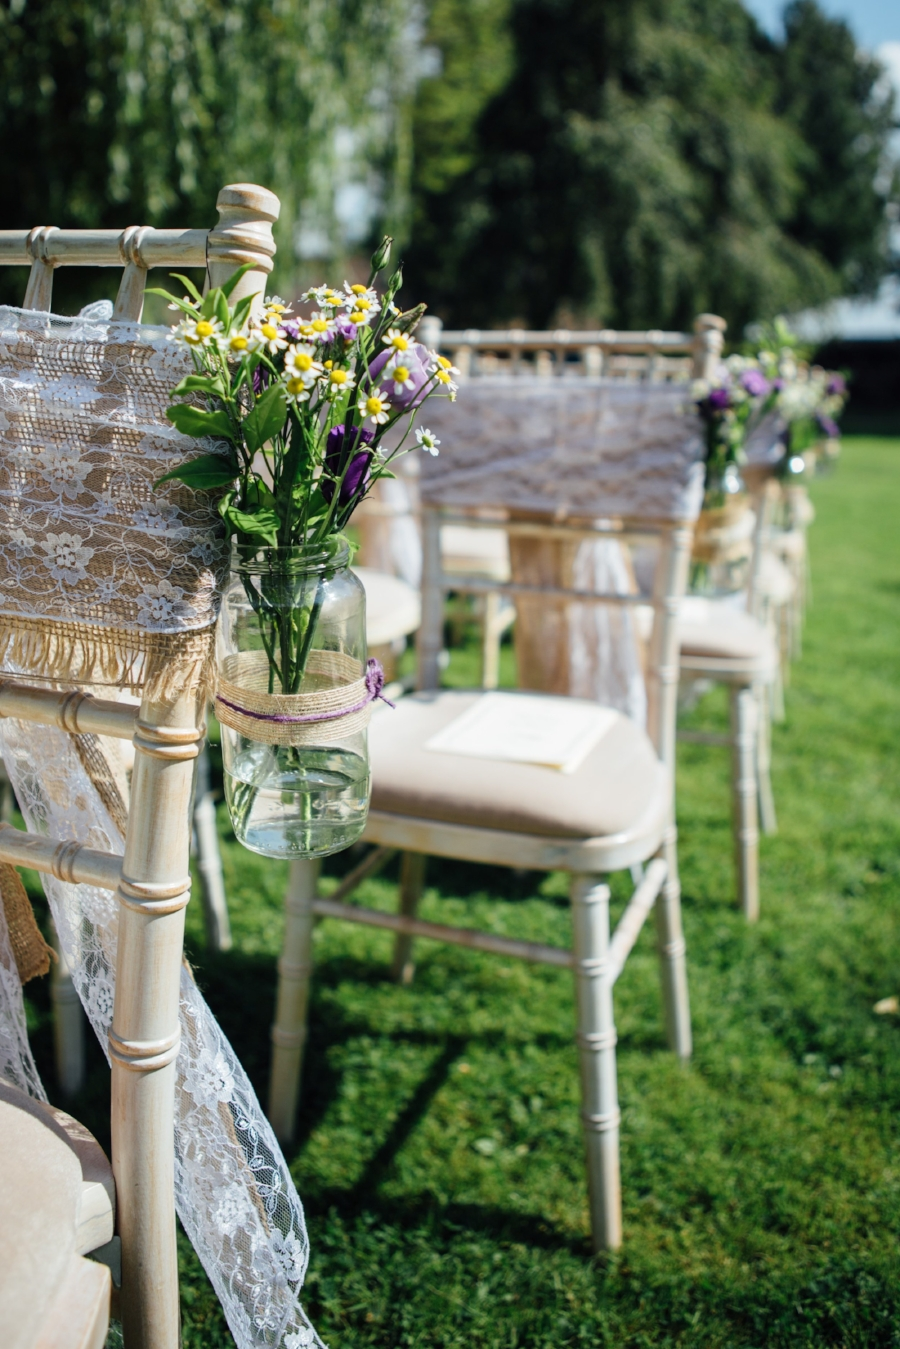 Webb-and-Farrer-Ways-to-use-your-wedding-flowers-twice-Brighton-Florist.jpg